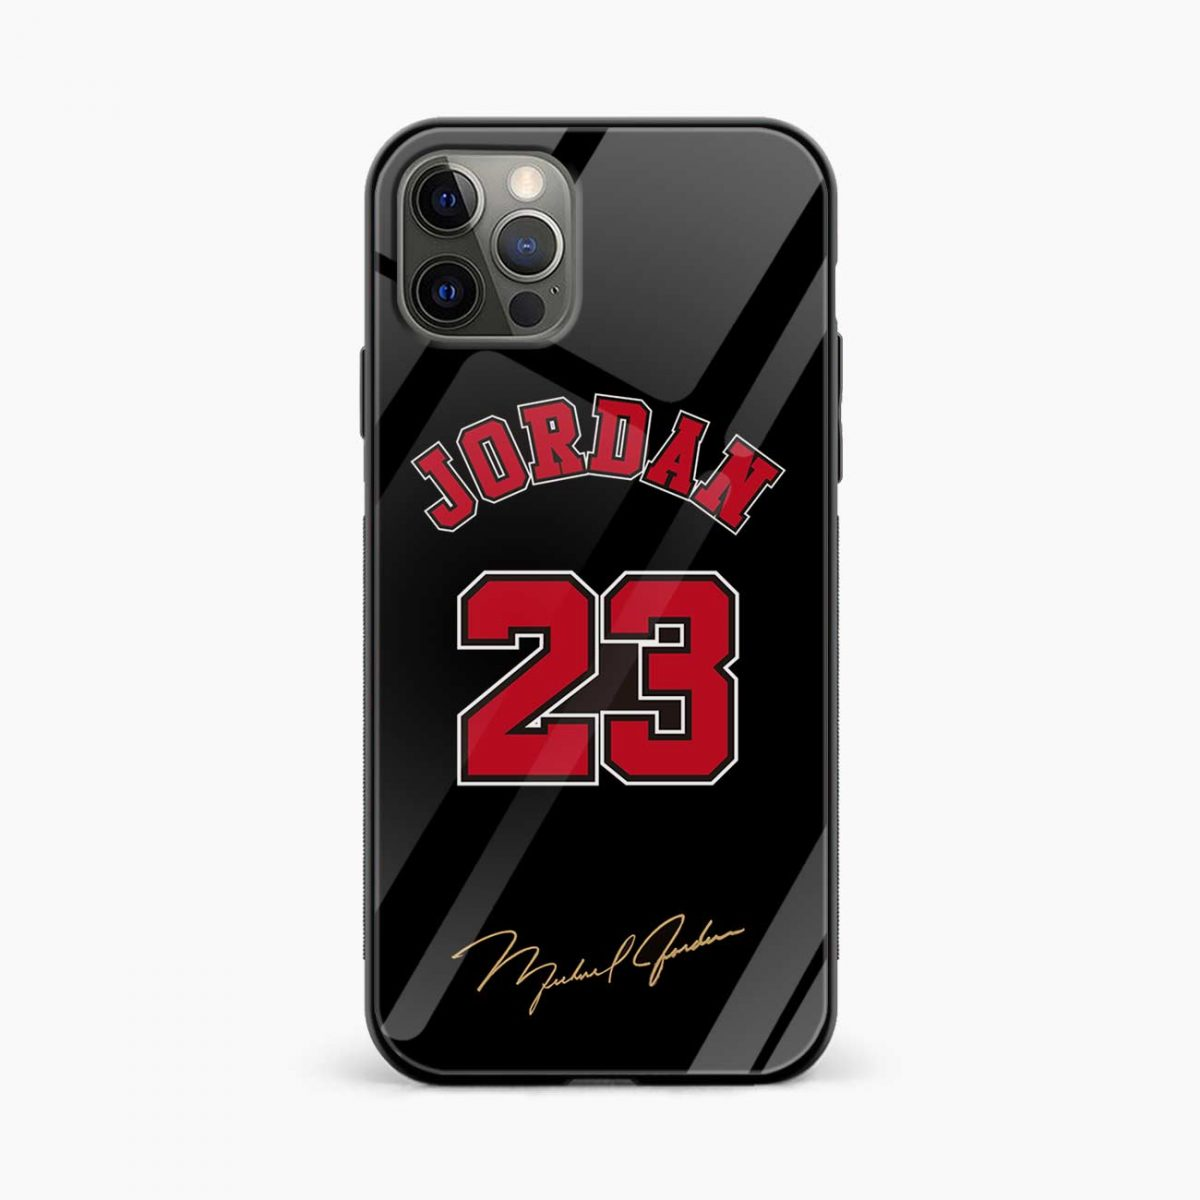 jordan 23 iphone pro back cover front view